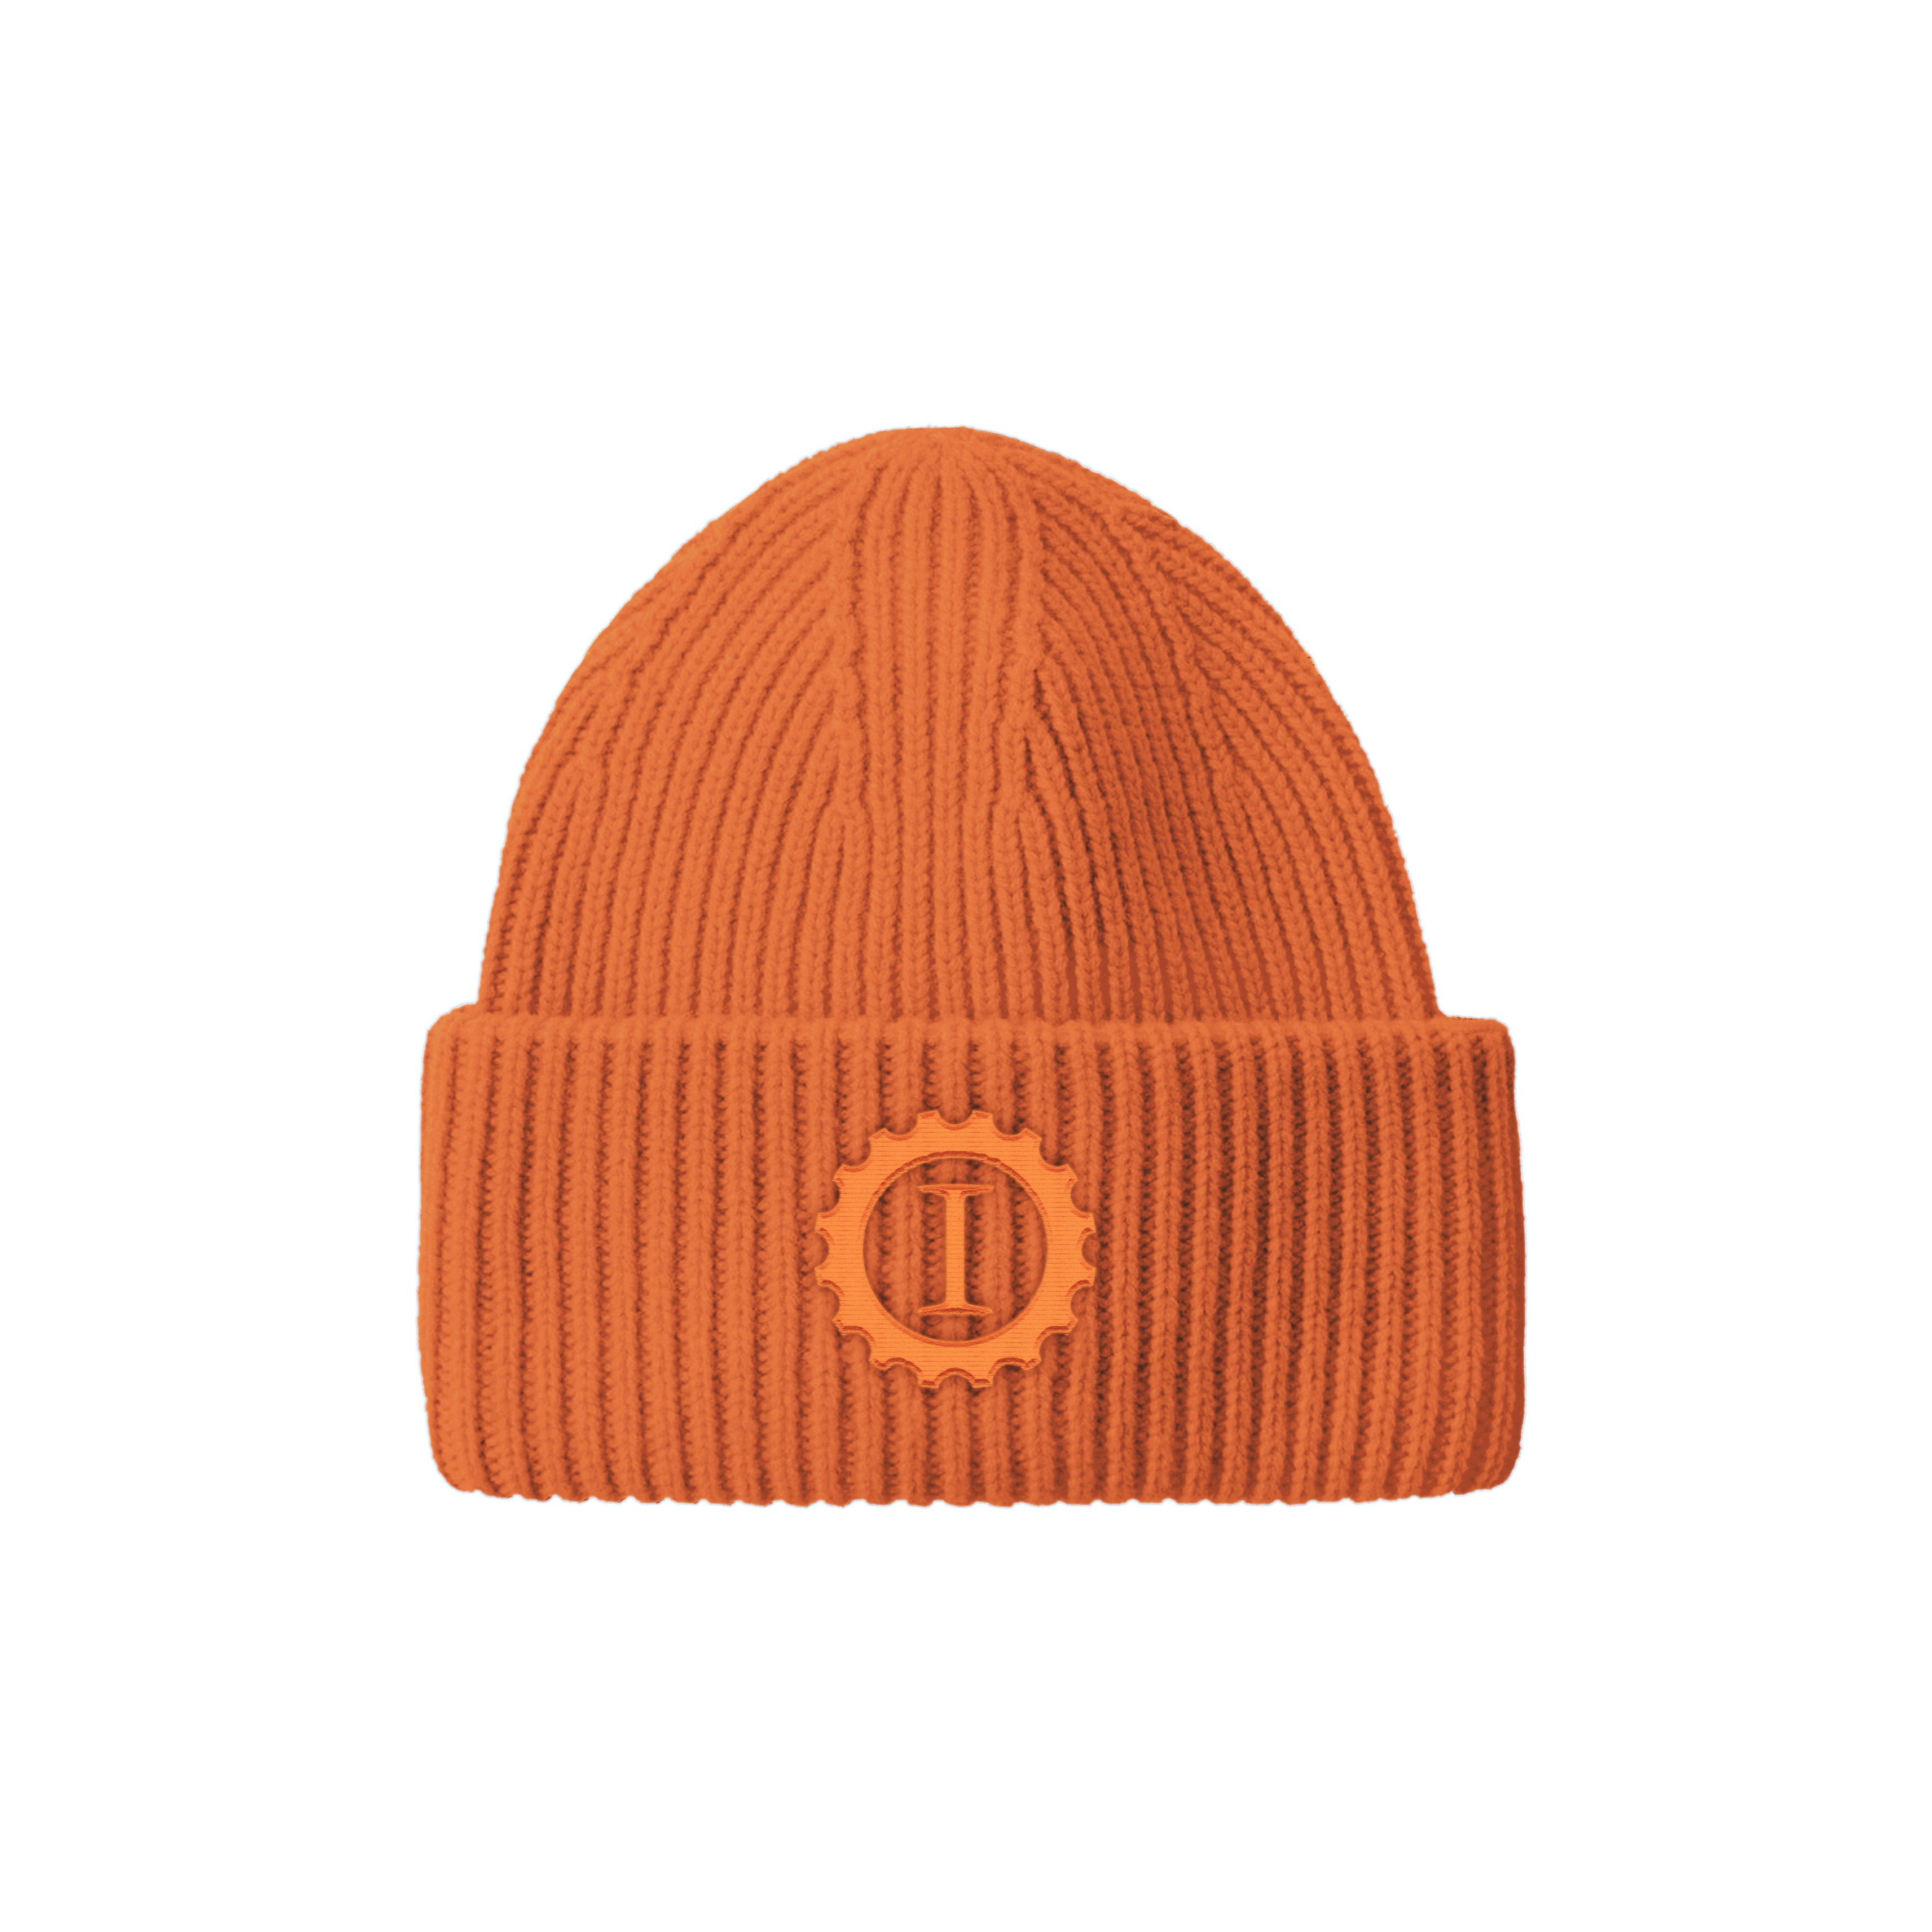 Oversized Beanie Orange - Garage Italia Shop - cuffia - berretto - ricamo - embroidery - oversize